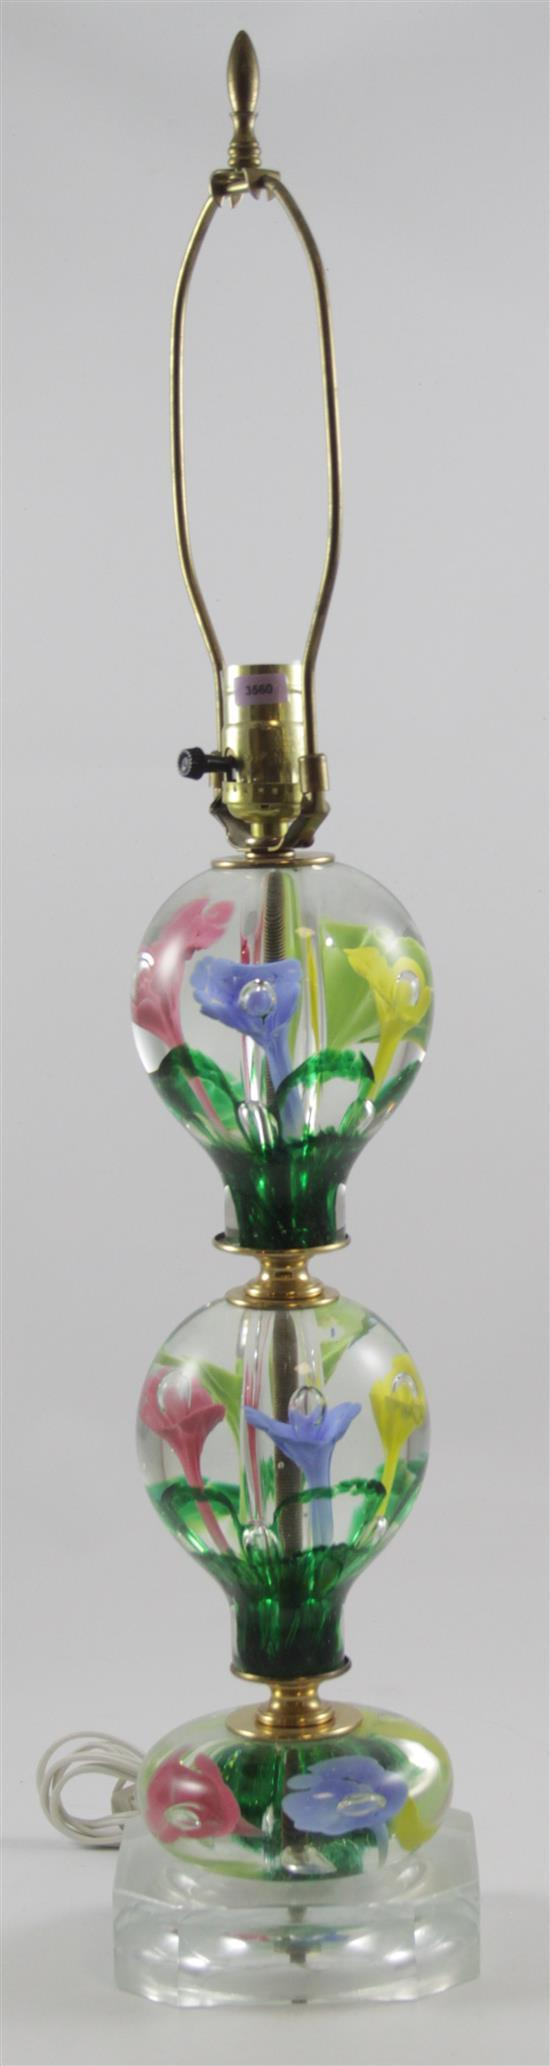 UNMARKED TABLE LAMP WITH MULTI-COLOR TRUMPET FLOWERS, 29.25